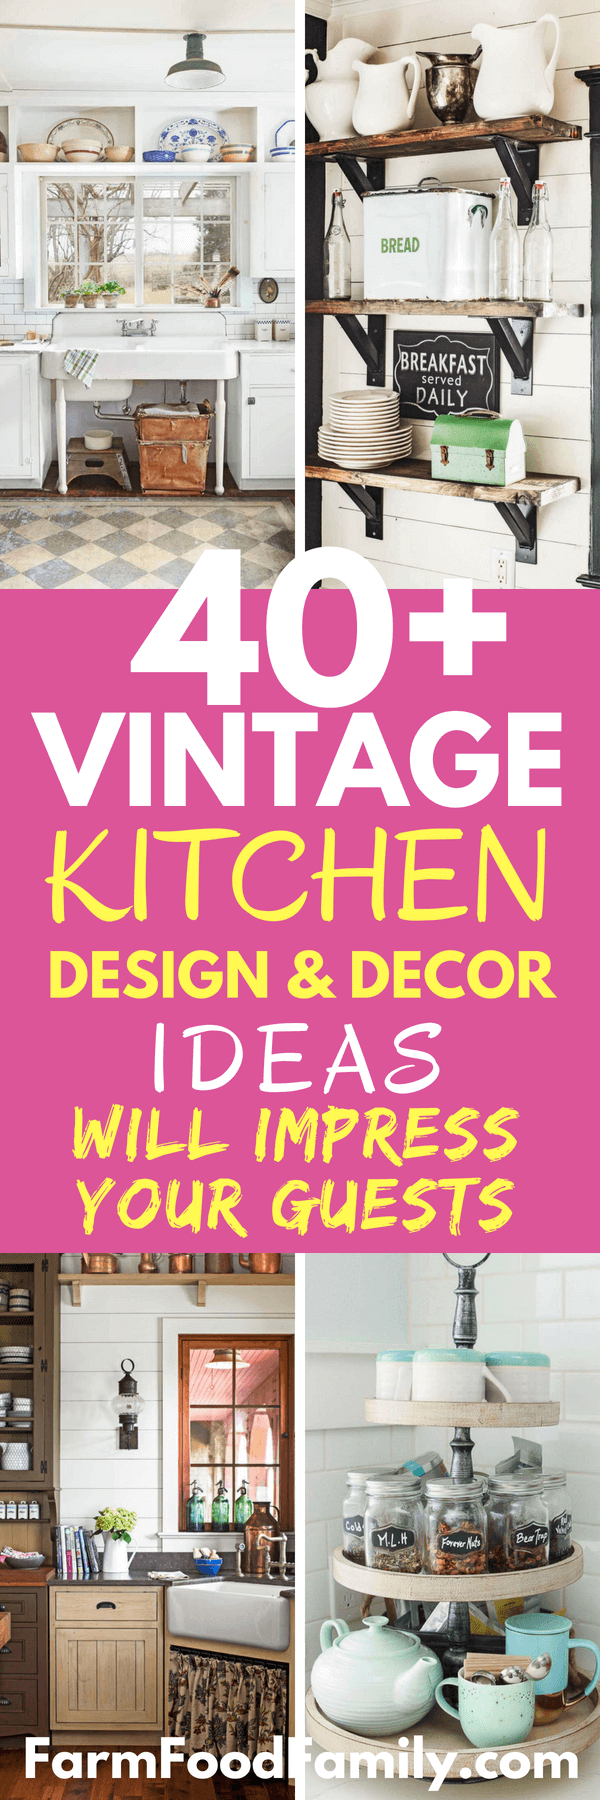 Finding the decor ideas for your kitchen? Check out 40 vintage kitchen design and decor ideas in this post. #homedecor #kitchendecor #farmfoodfamily